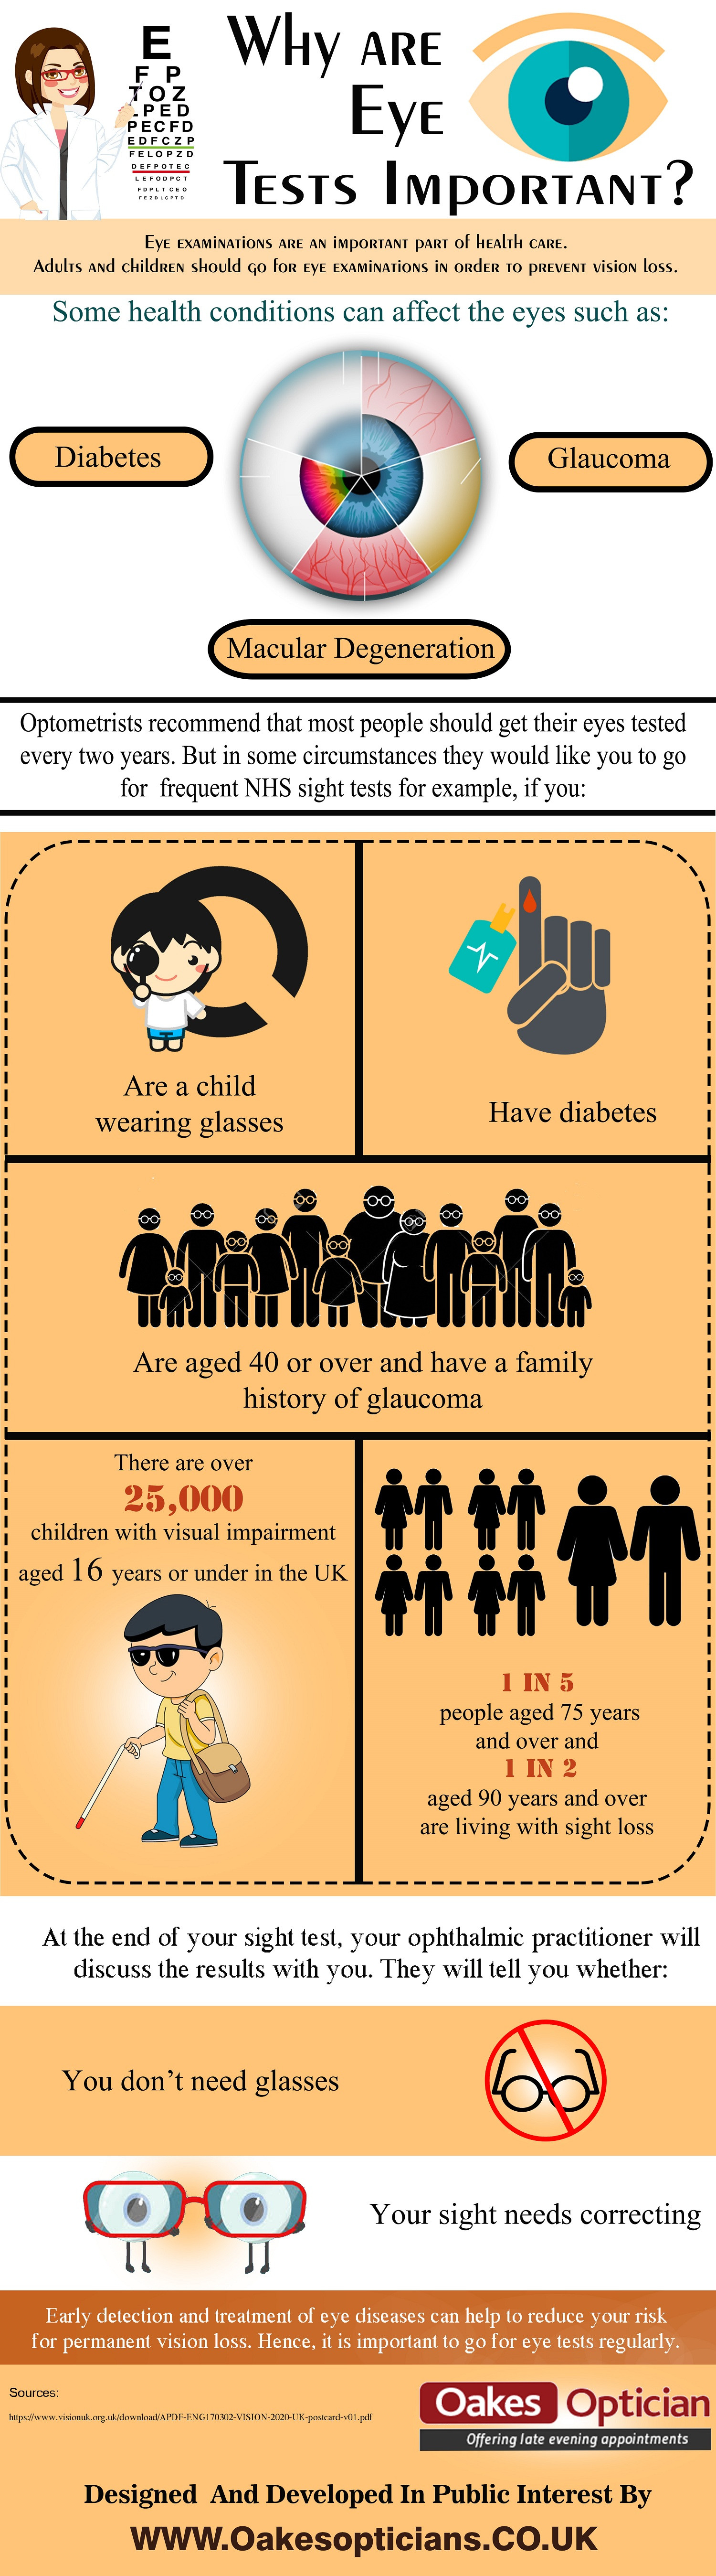 Why are Eye Tests Important? Infographic